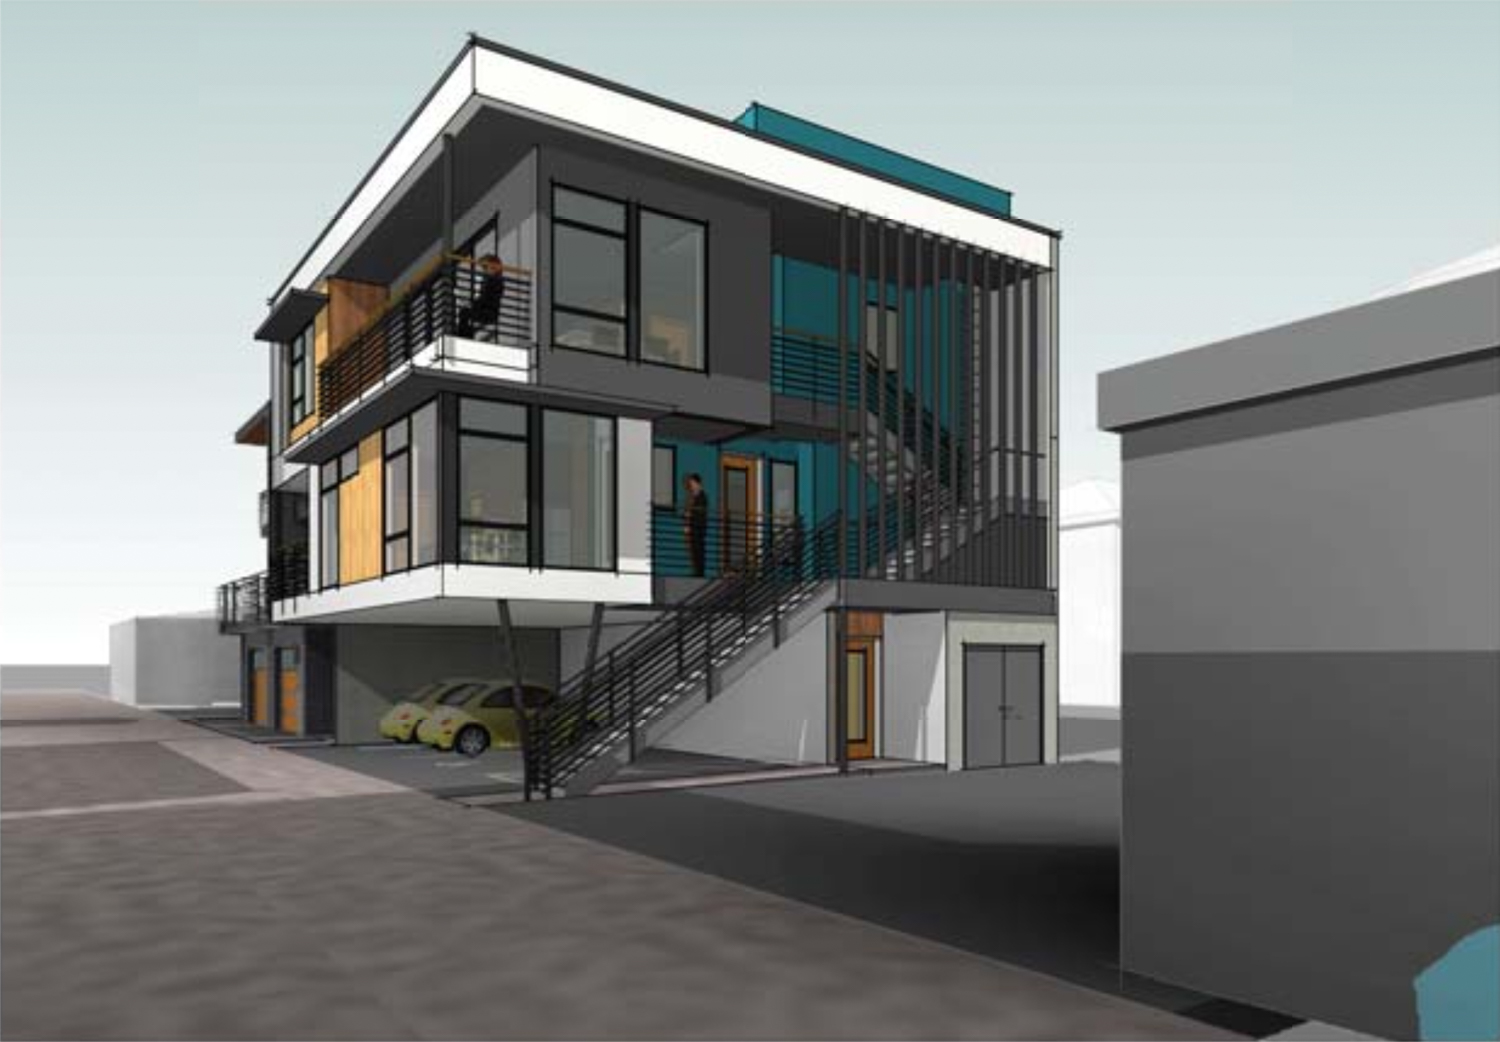 Tomato Alley Infill building at 2014 10th Street, rendering by Ellis Architects